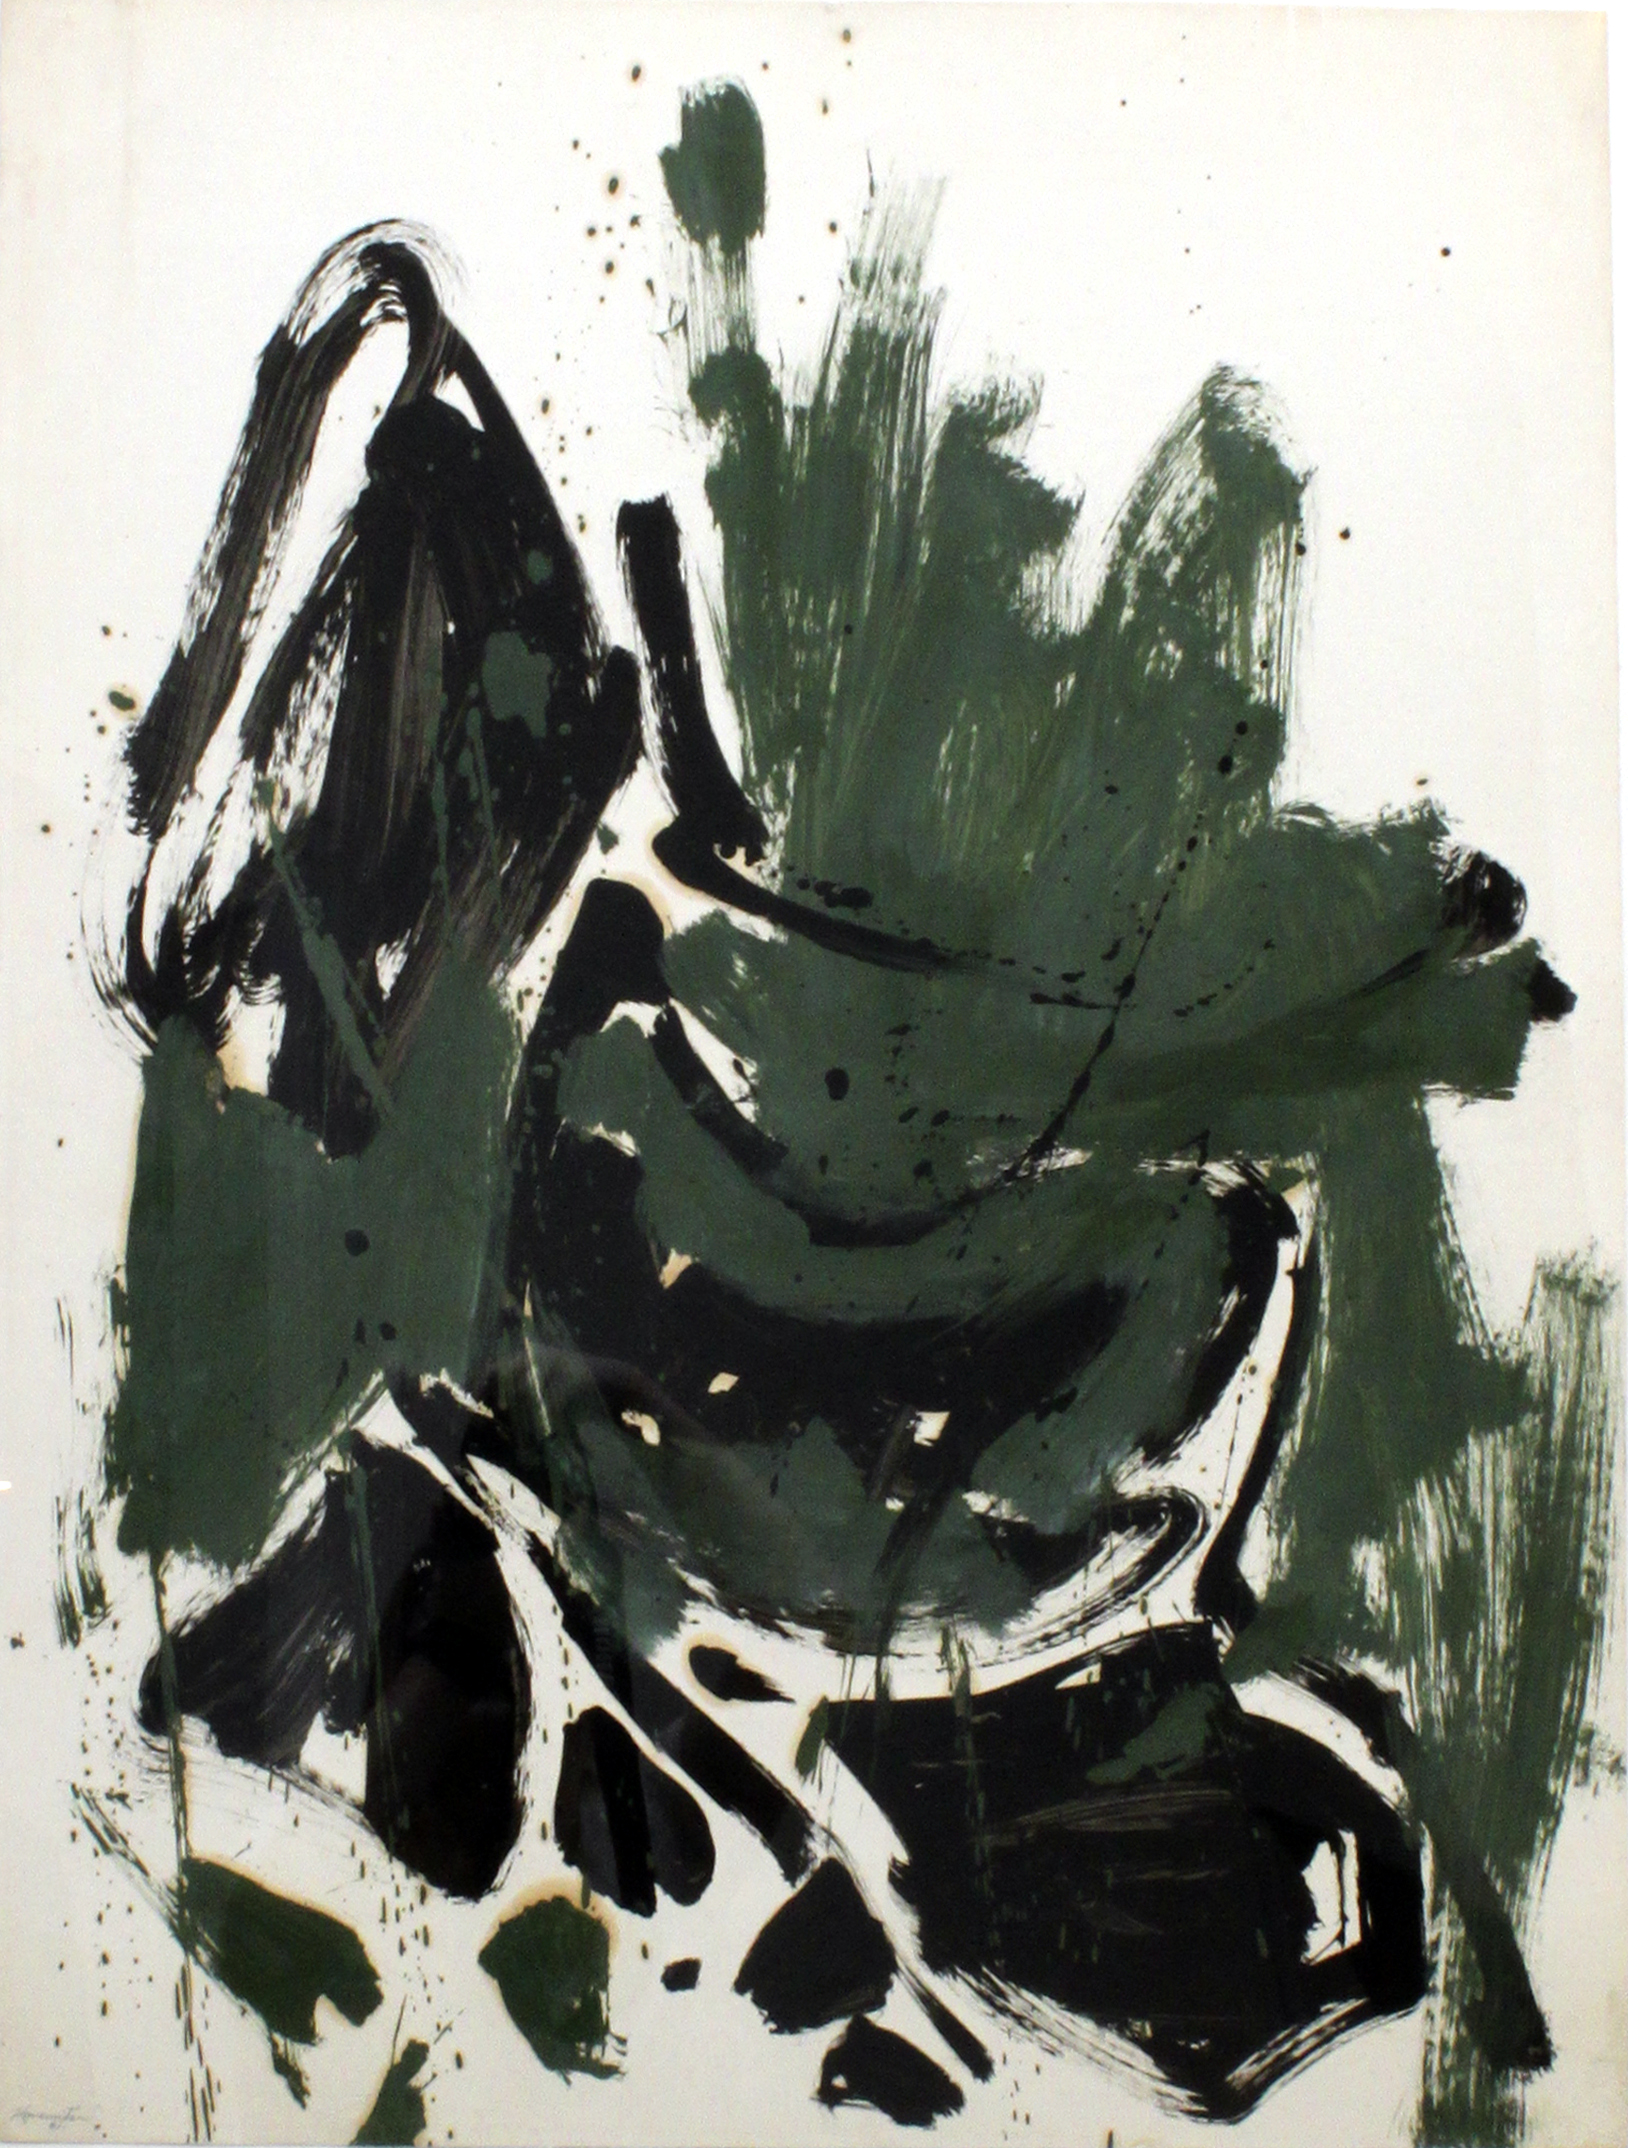 Abstraction (Green, Black, Brown) , 1961  oil on paper 28 1/4 x 22 1/2 inches; 71.8 x 57.1 centimeters  $12,000